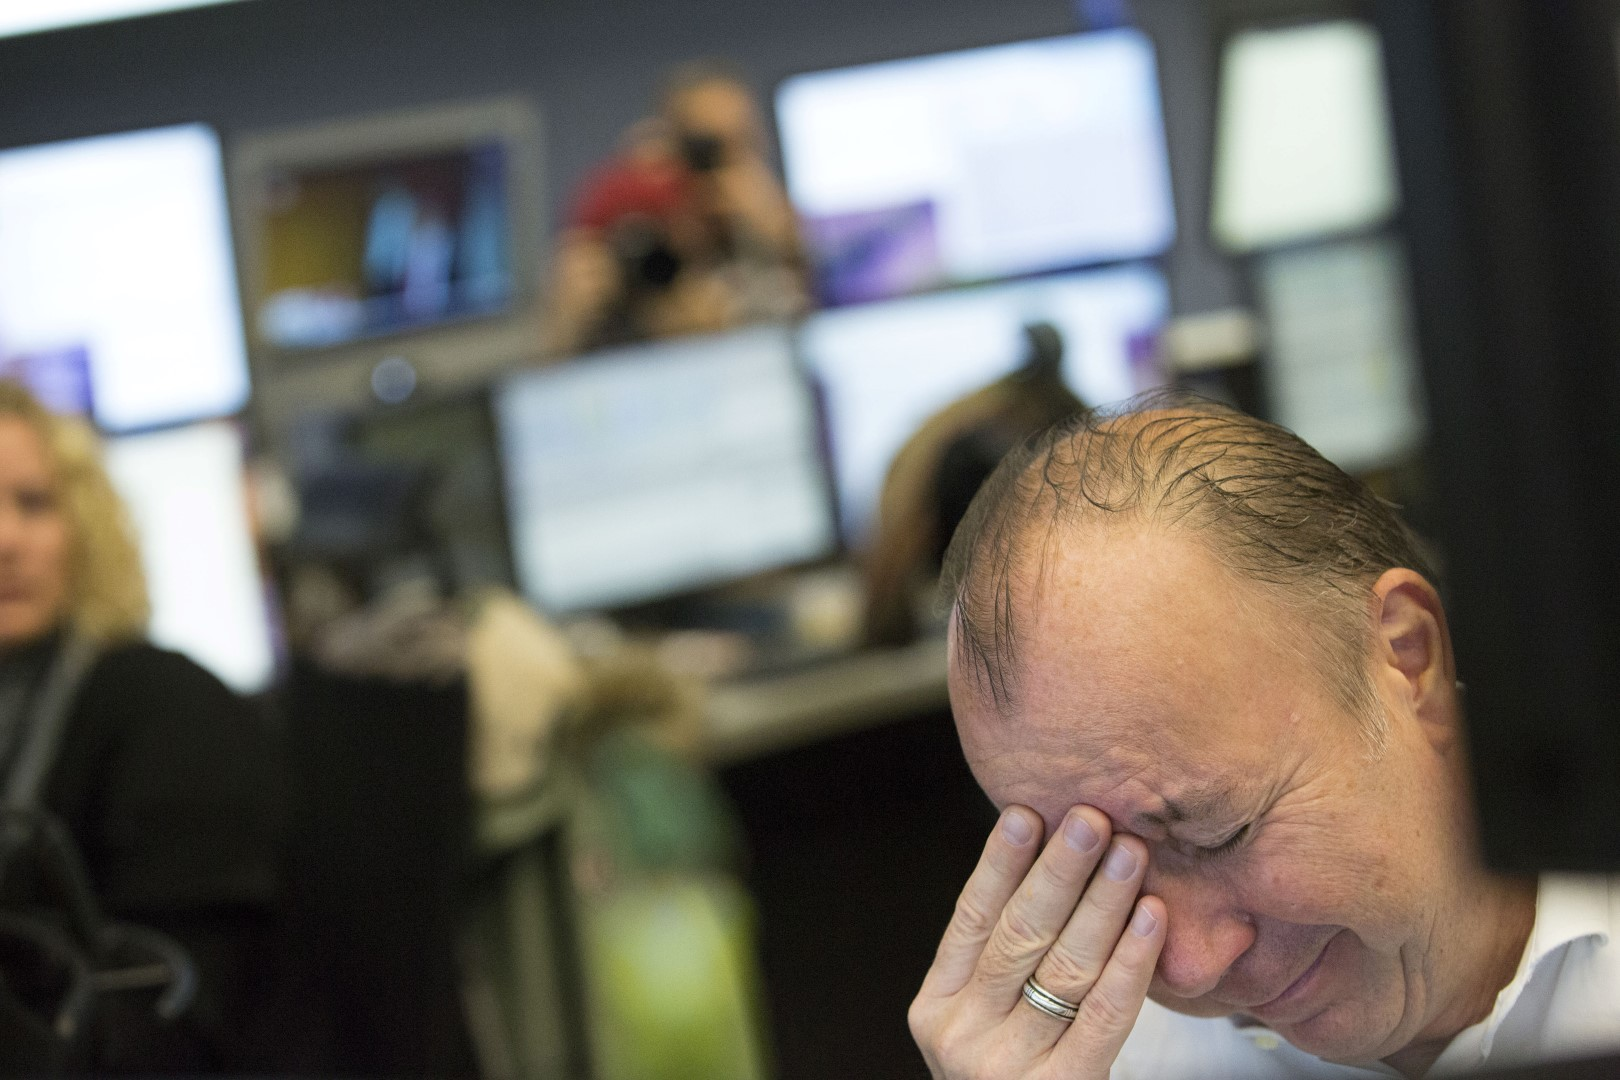 A trader reacts as trading begins inside the Frankfurt Stock Exchange following the U.S. Presidential election result announcement in Frankfurt, Germany, on Wednesday, Nov. 09, 2016. Global markets were thrown into disarray as Donald Trump won the U.S. presidential election, shocking traders after recent polls indicated that Hillary Clinton would be the victor. Photographer: Alex Kraus/Bloomberg